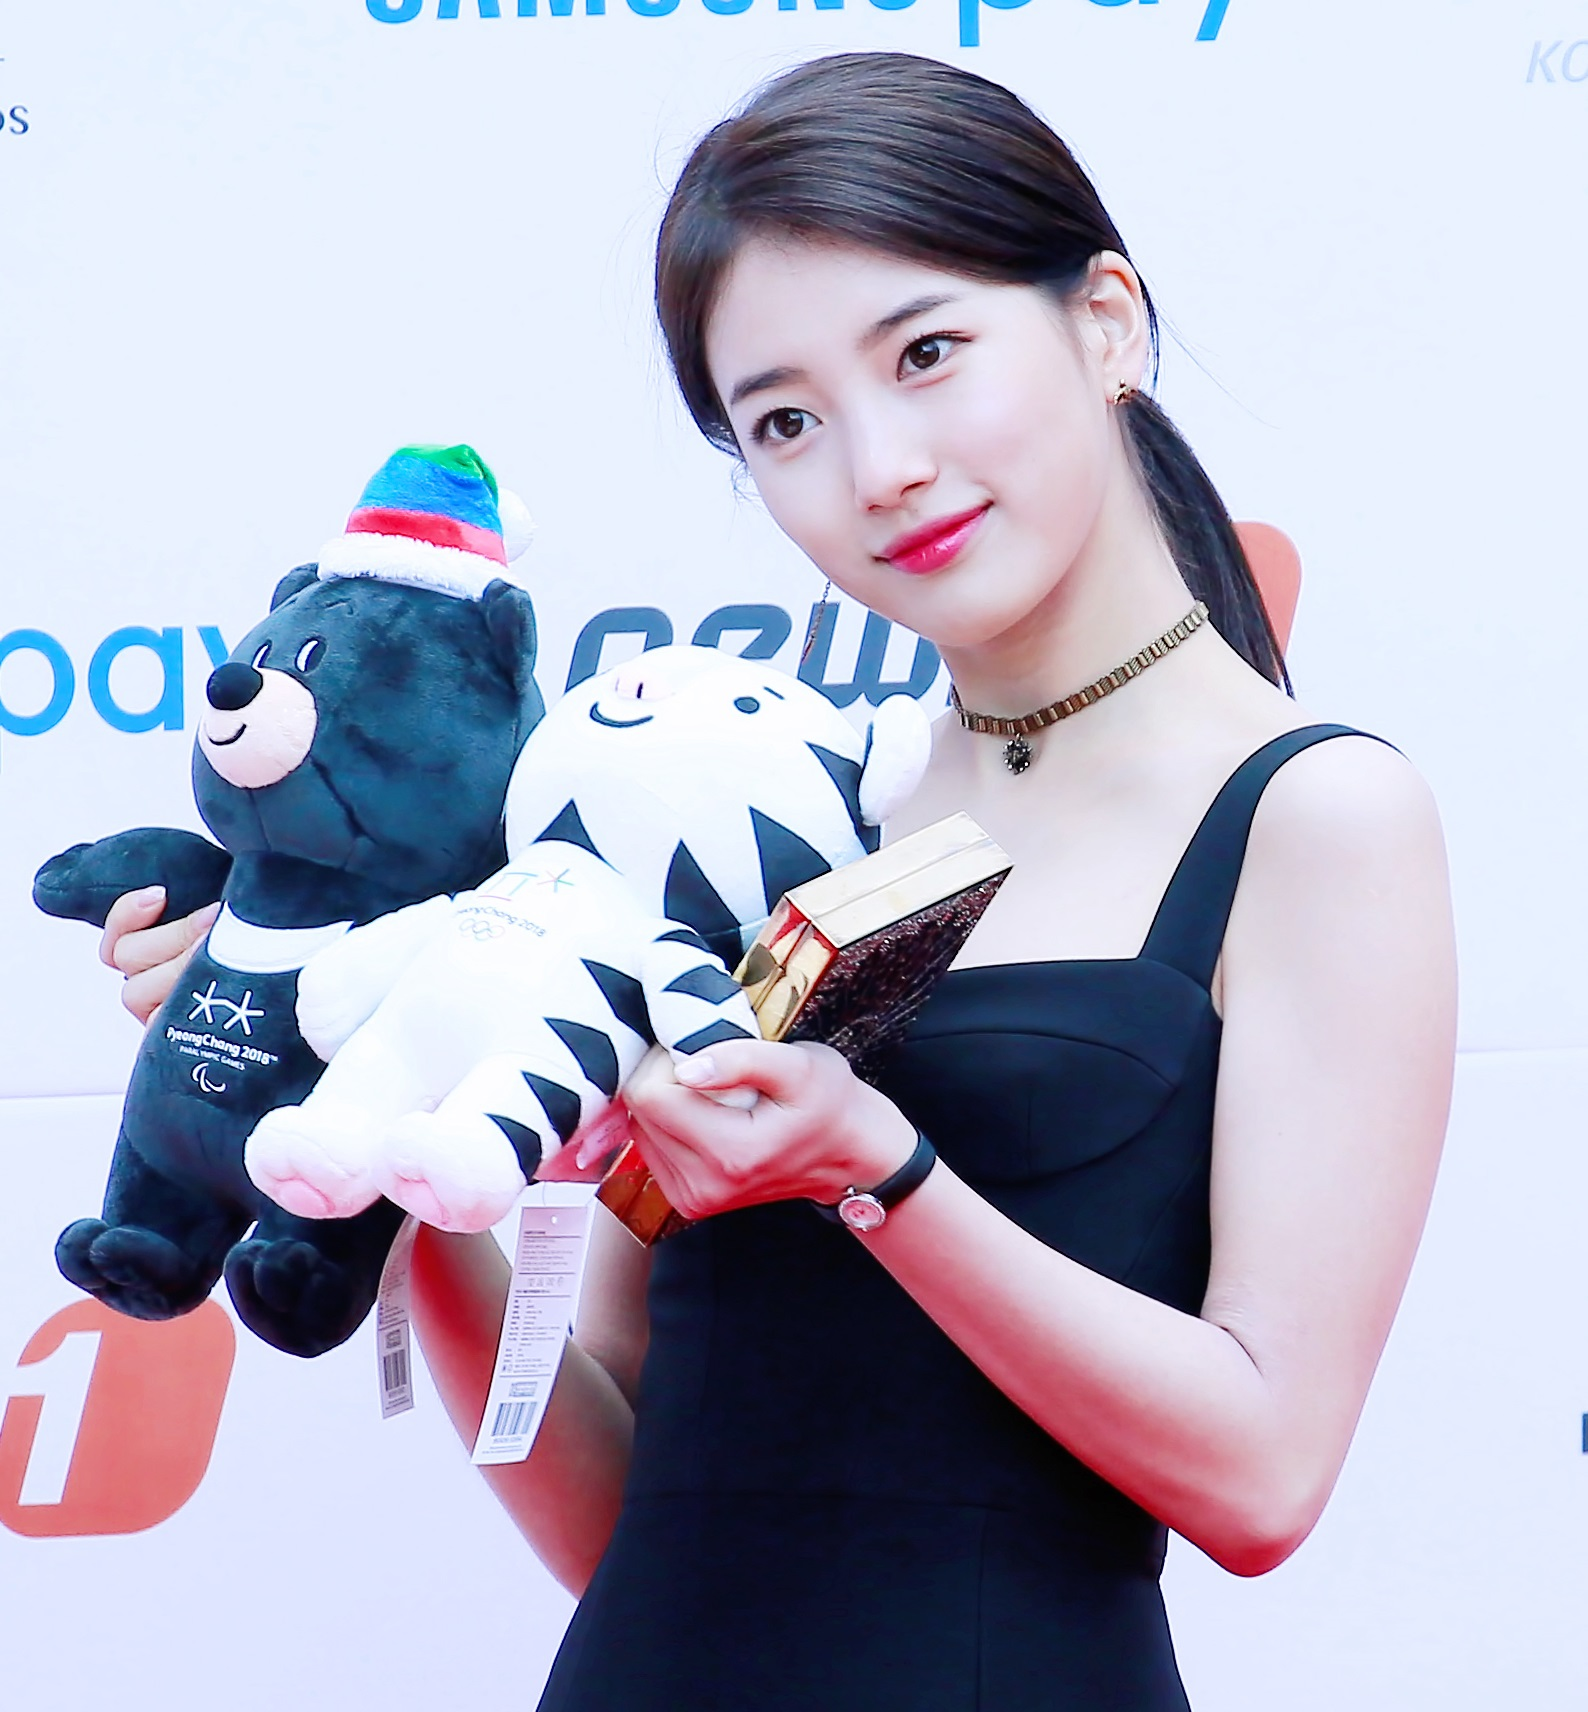 List Of Awards And Nominations Received By Bae Suzy Wikipedia